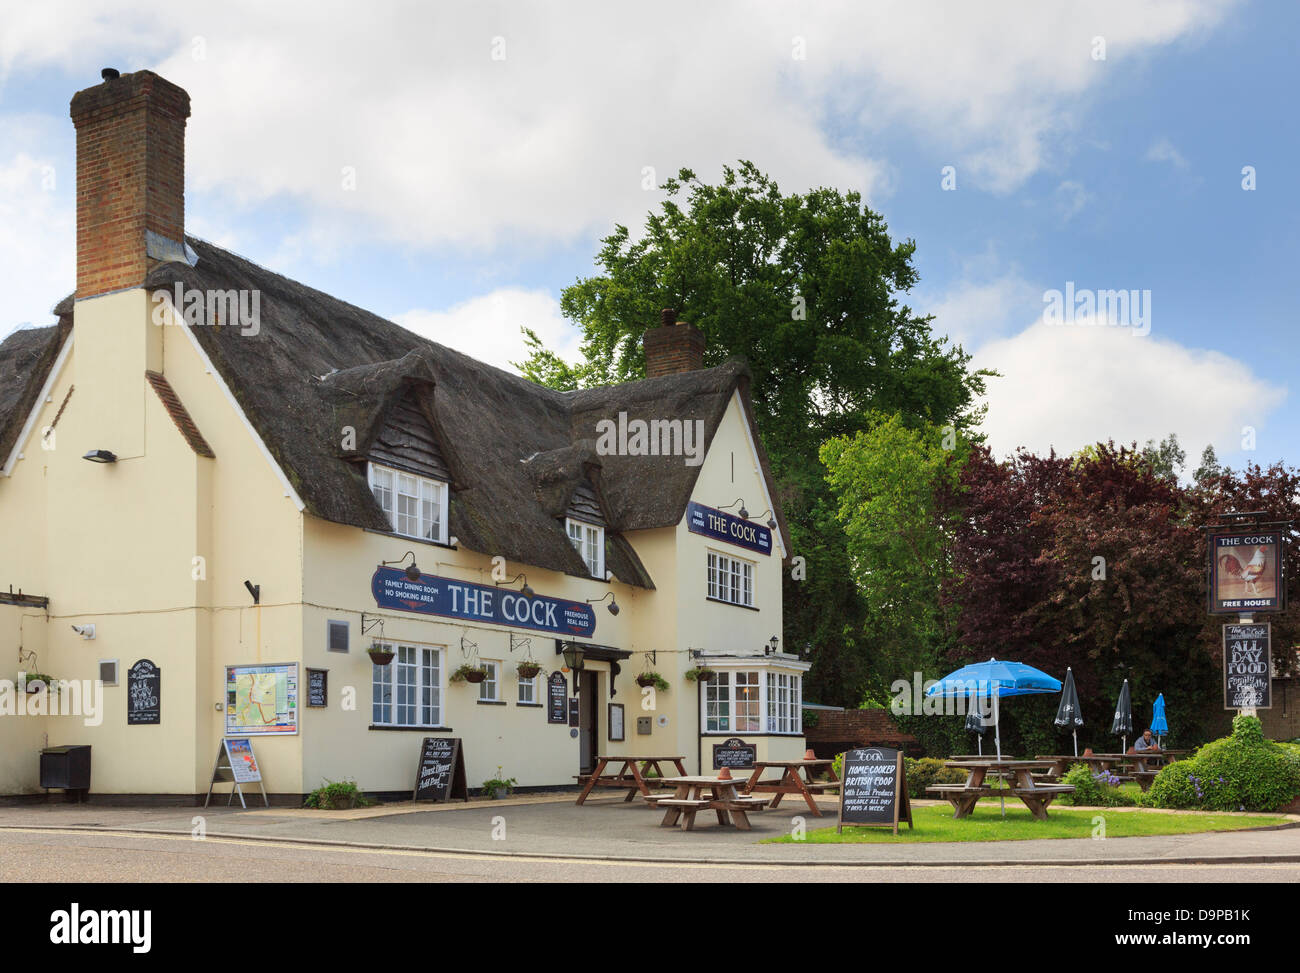 The Cock Thatched Pub With Beer Garden In Historic Village